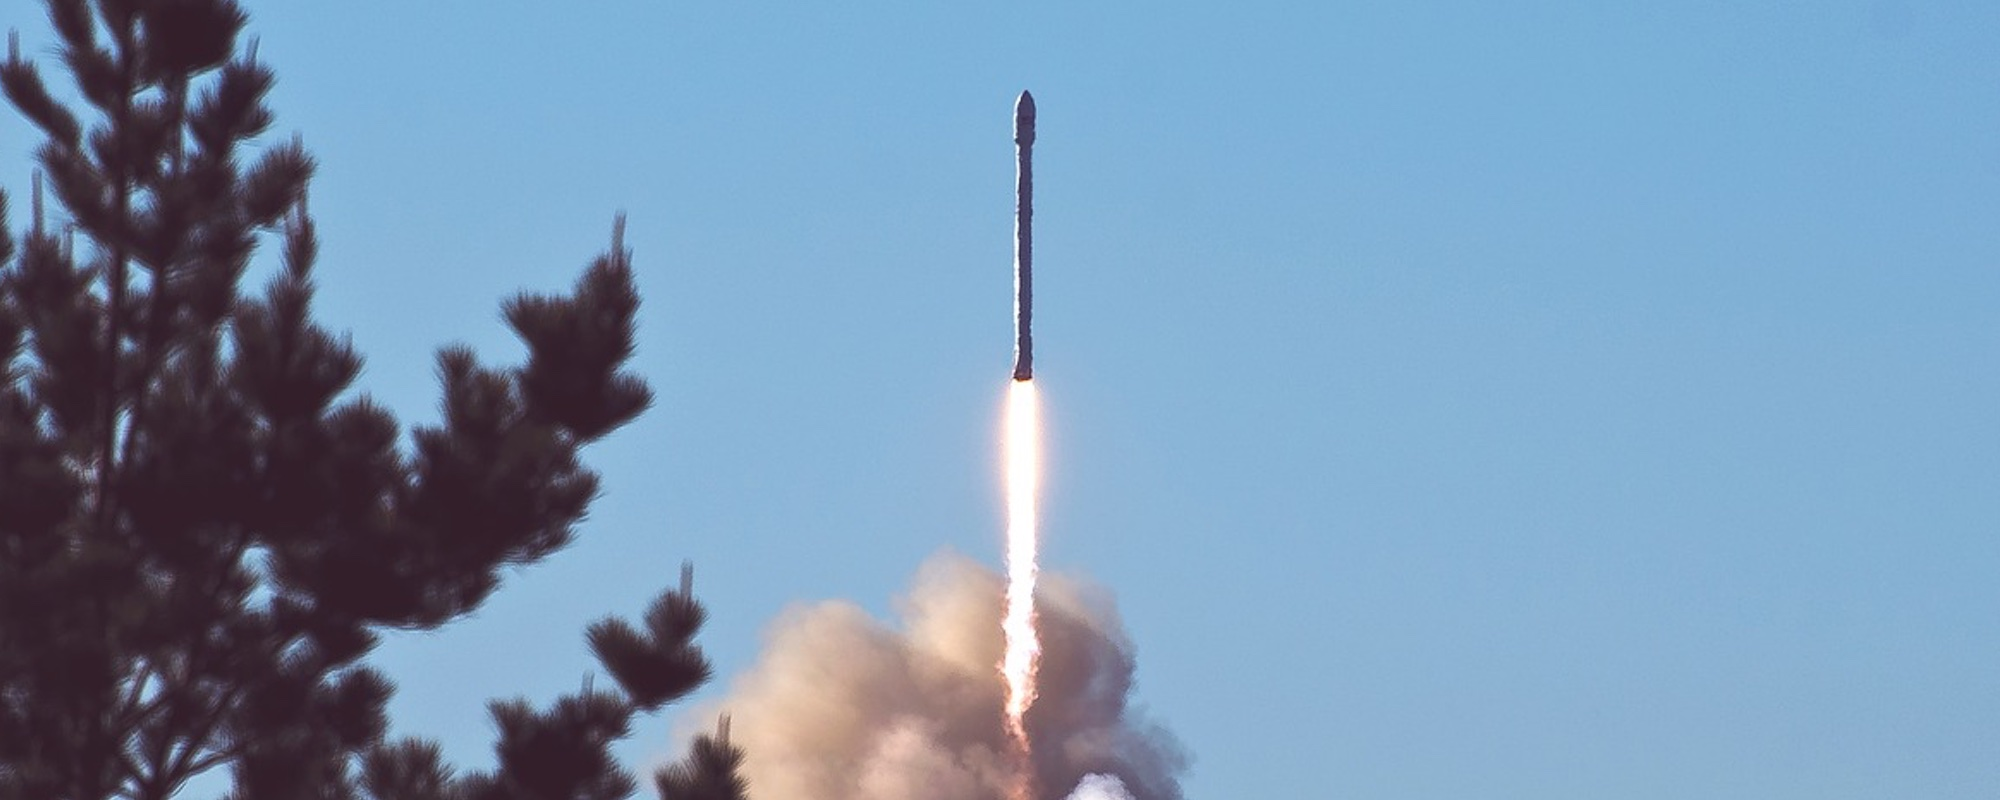 Pre-Market Morning Thoughts on Missile Launch